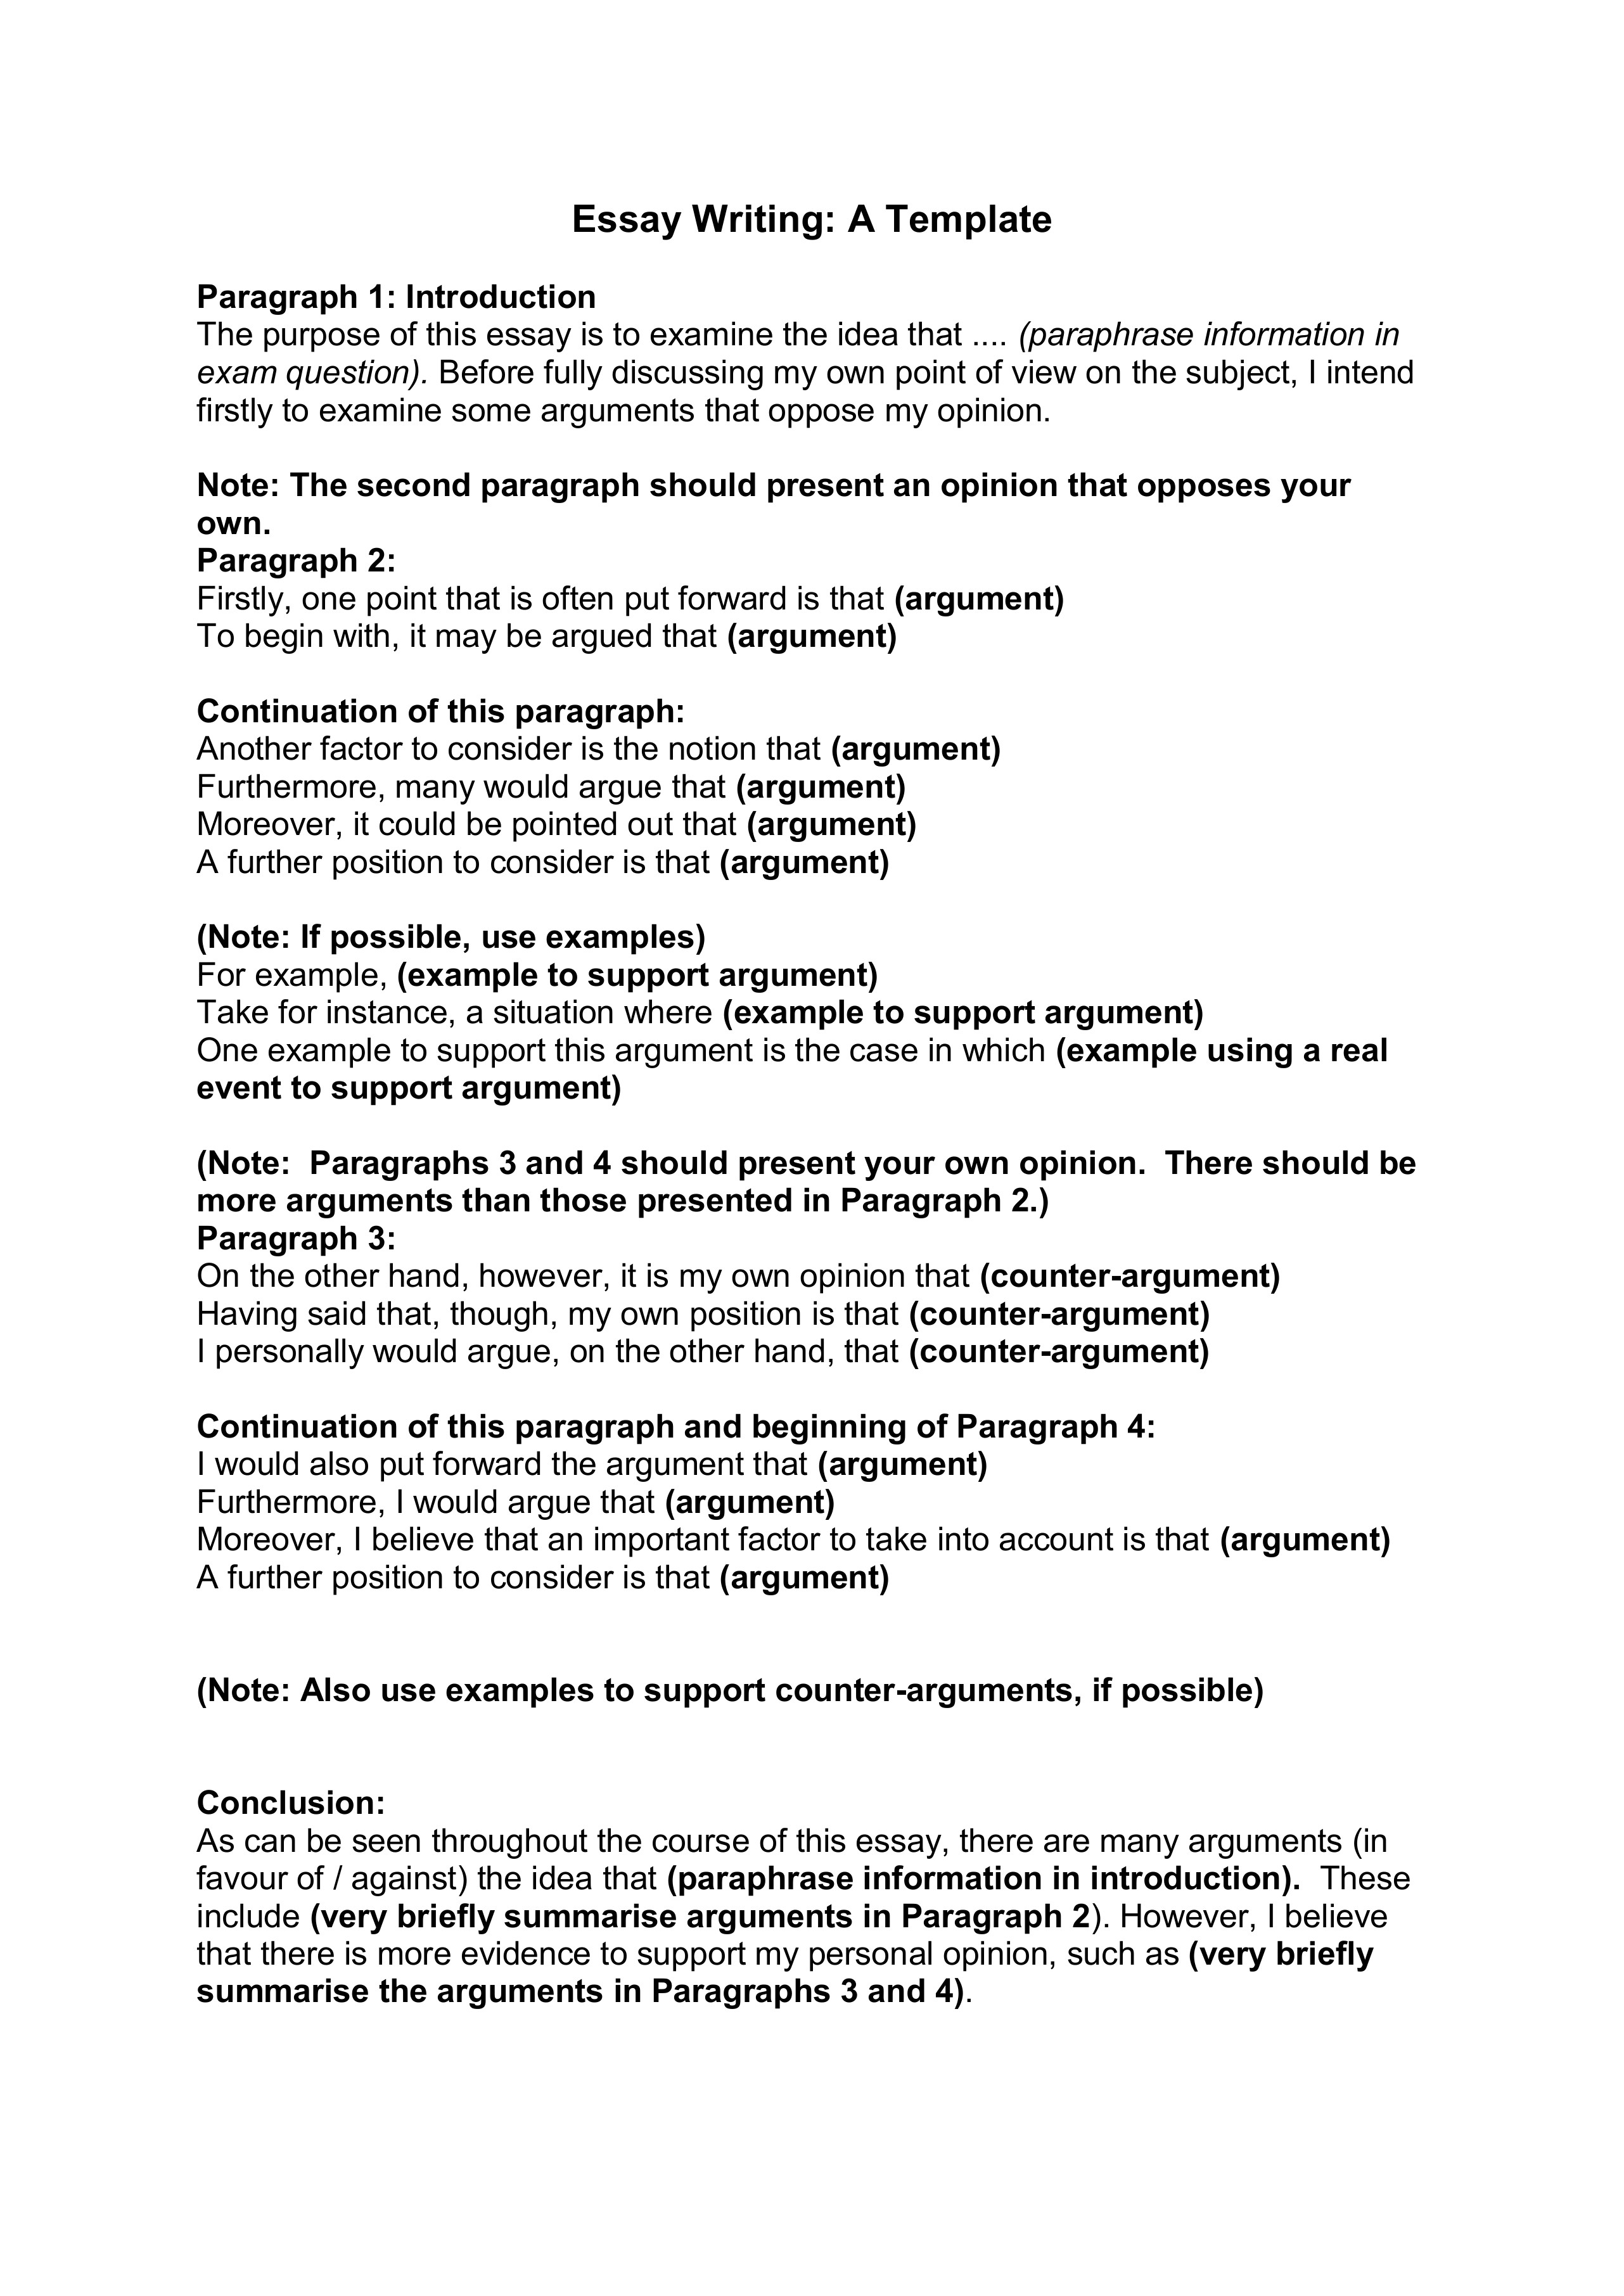 007 Essay Example Writing Template For Part Write An Stating Your Astounding Position On Whether A Person Can Choose To Be Happy Which Is More Important What Thinks Full